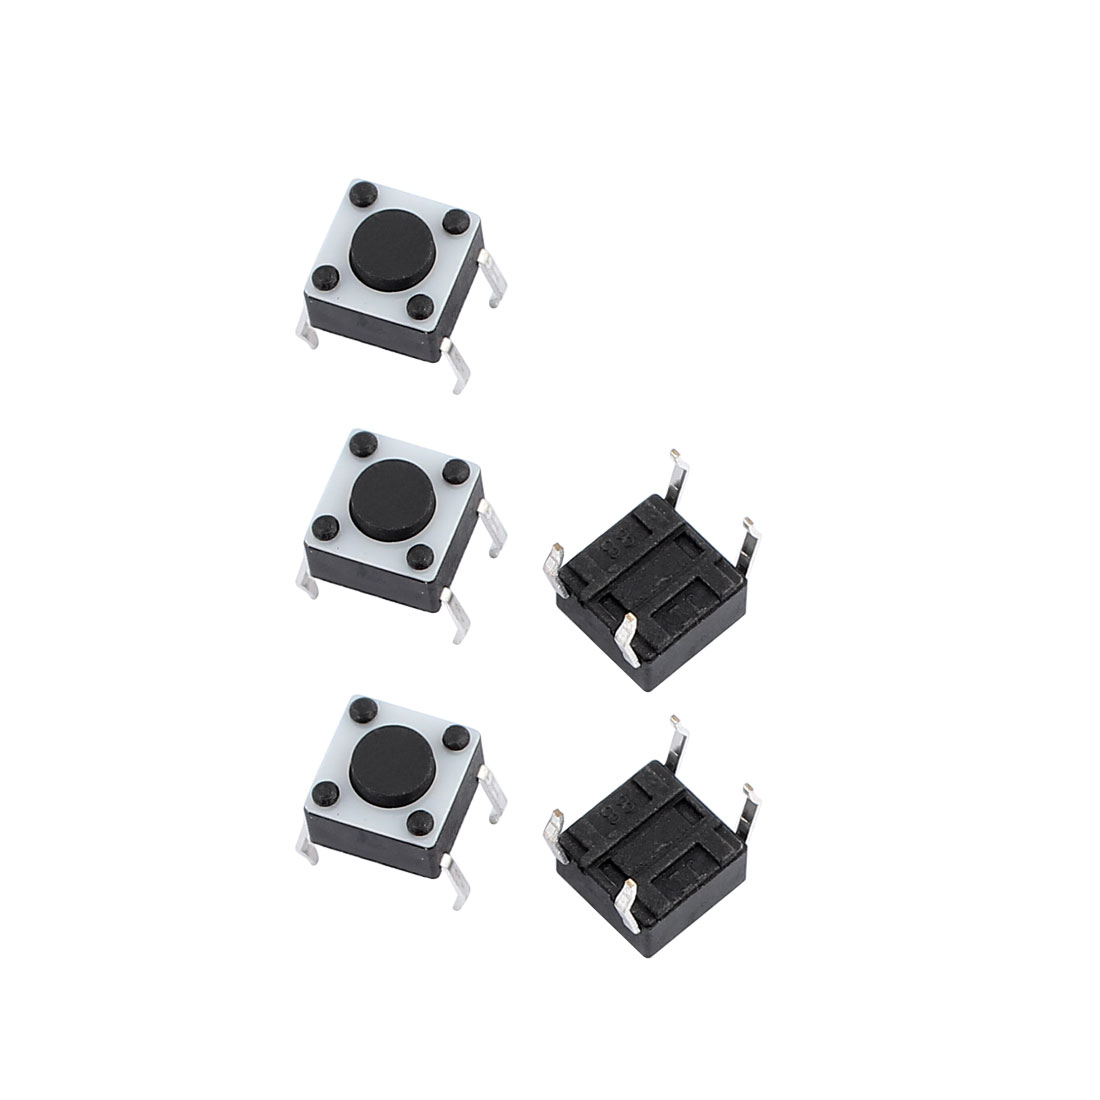 5Pcs 6mmx6mmx4.3mm Panel PCB Momentary Contact Round Black Push Button Switch 4 Terminals